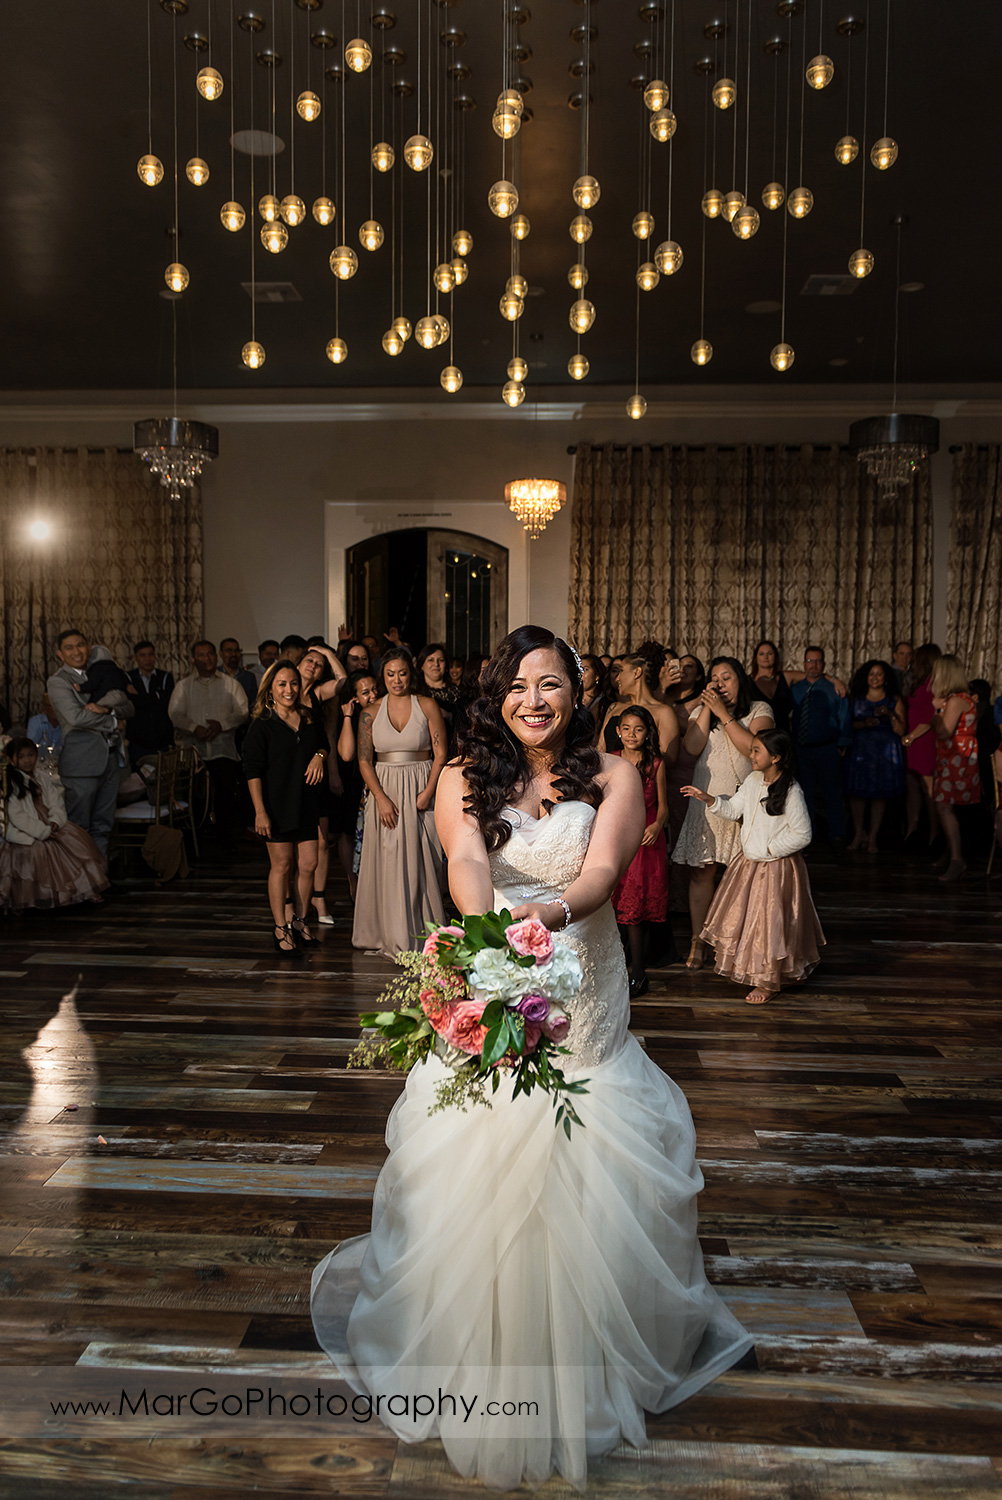 bride tossing bouquet during wedding reception at Sunol's Casa Bella